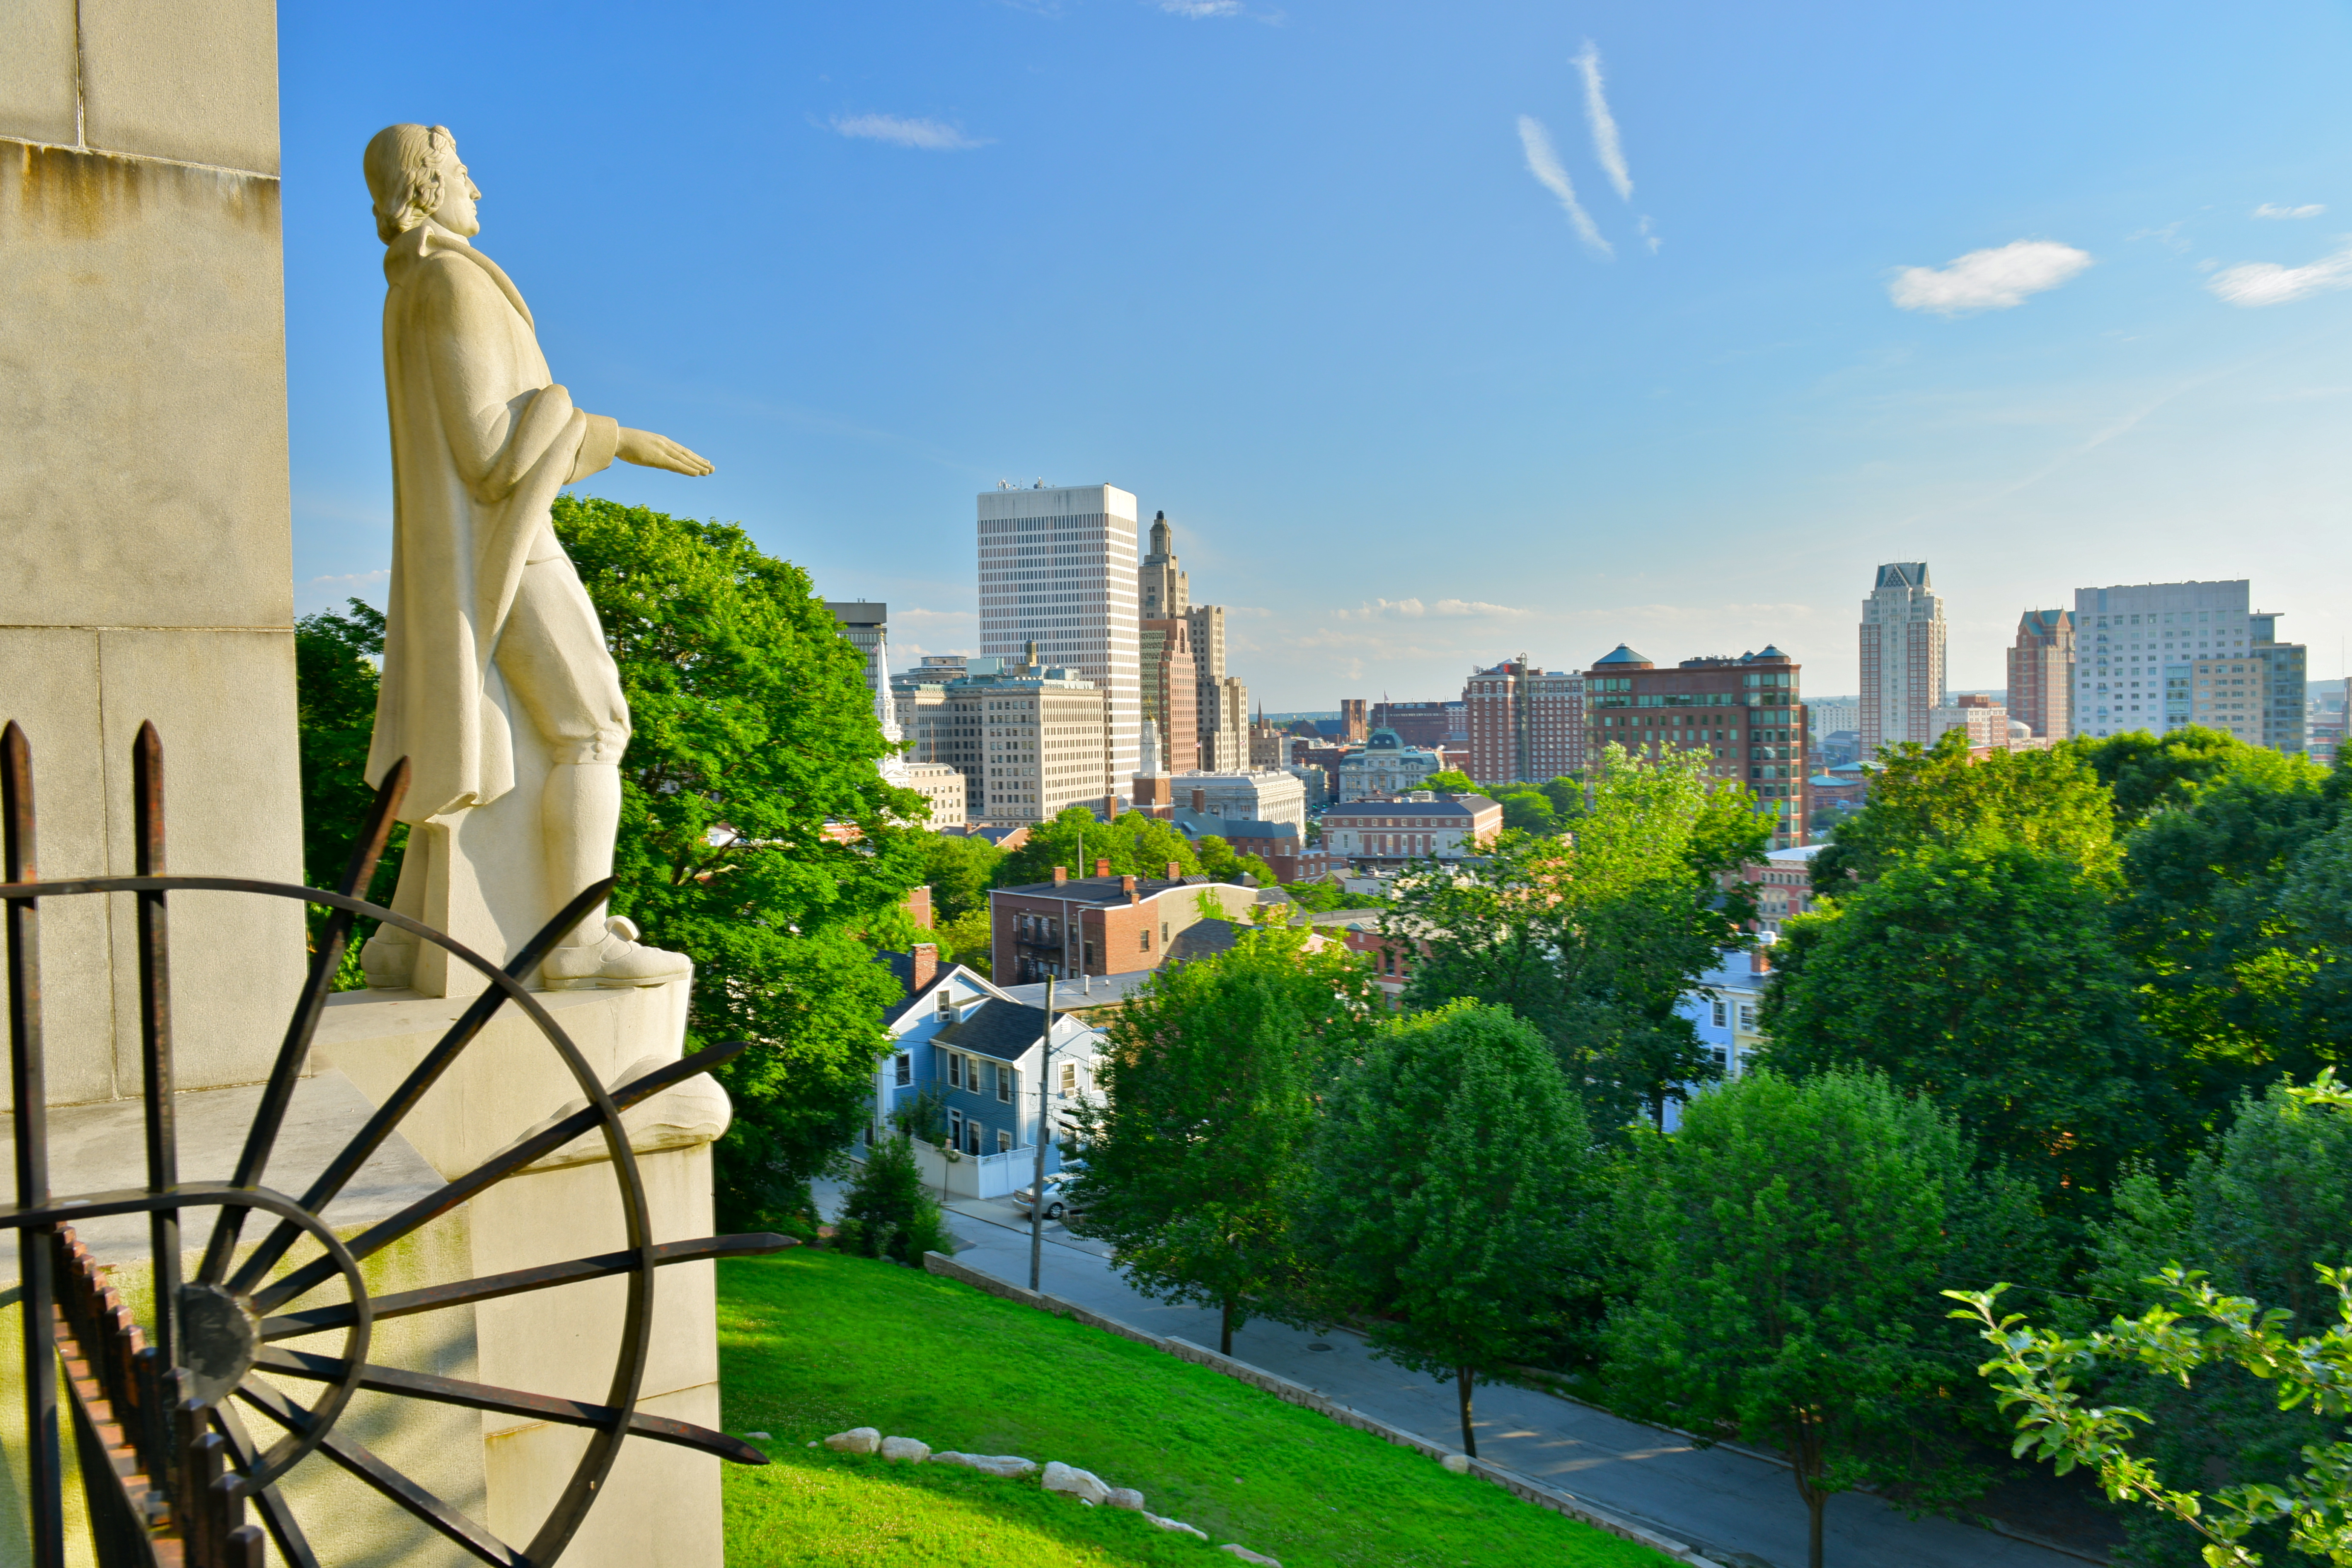 Prospect Terrace Park view of the Providence skyline and Roger Williams statue, Providence, Rhode Island, USA - Image Richard Cavalleri, Shutterstock.